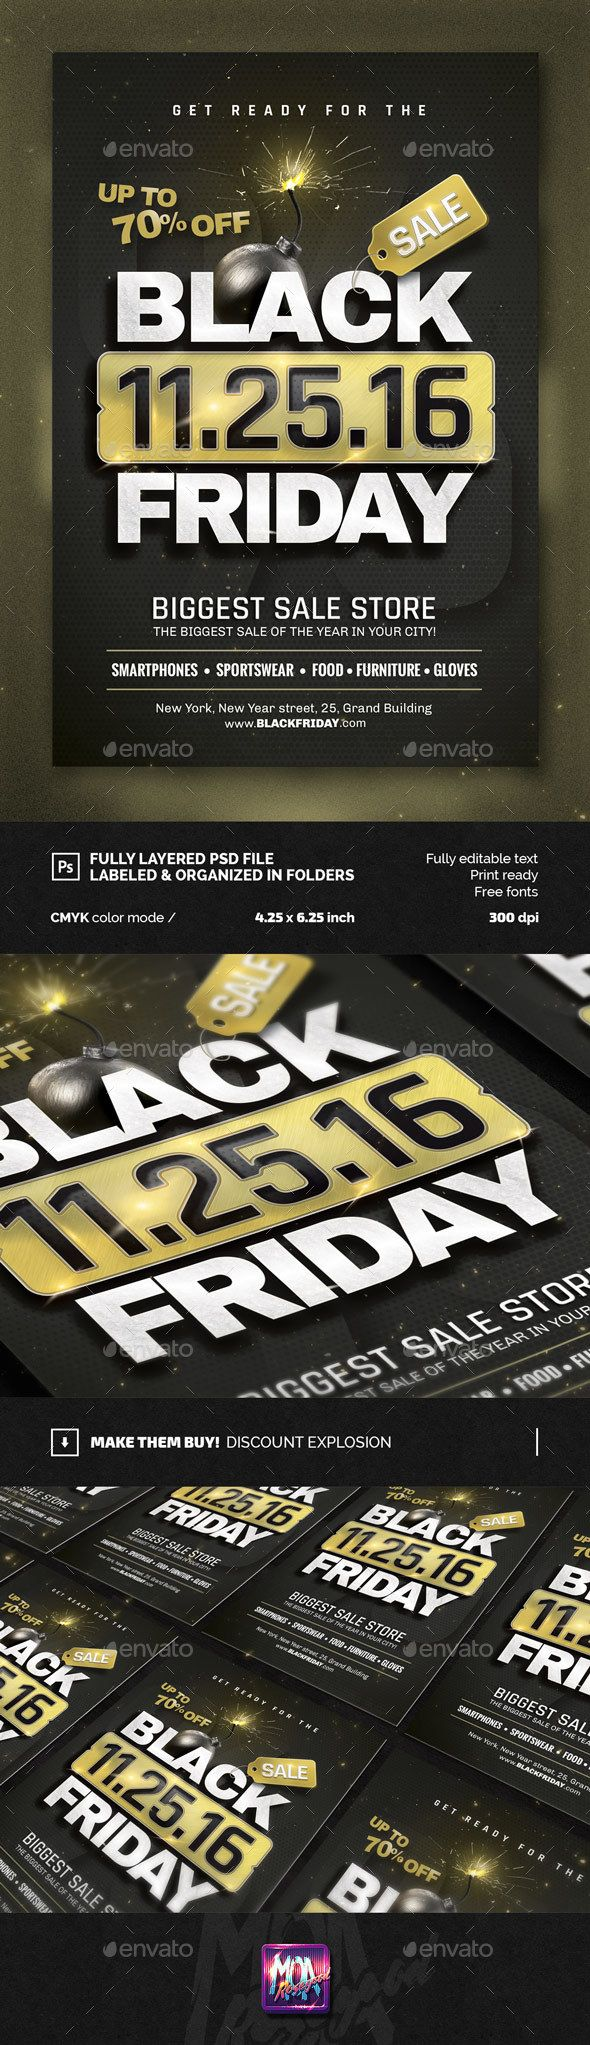 Black Friday flyer Template | Volantes